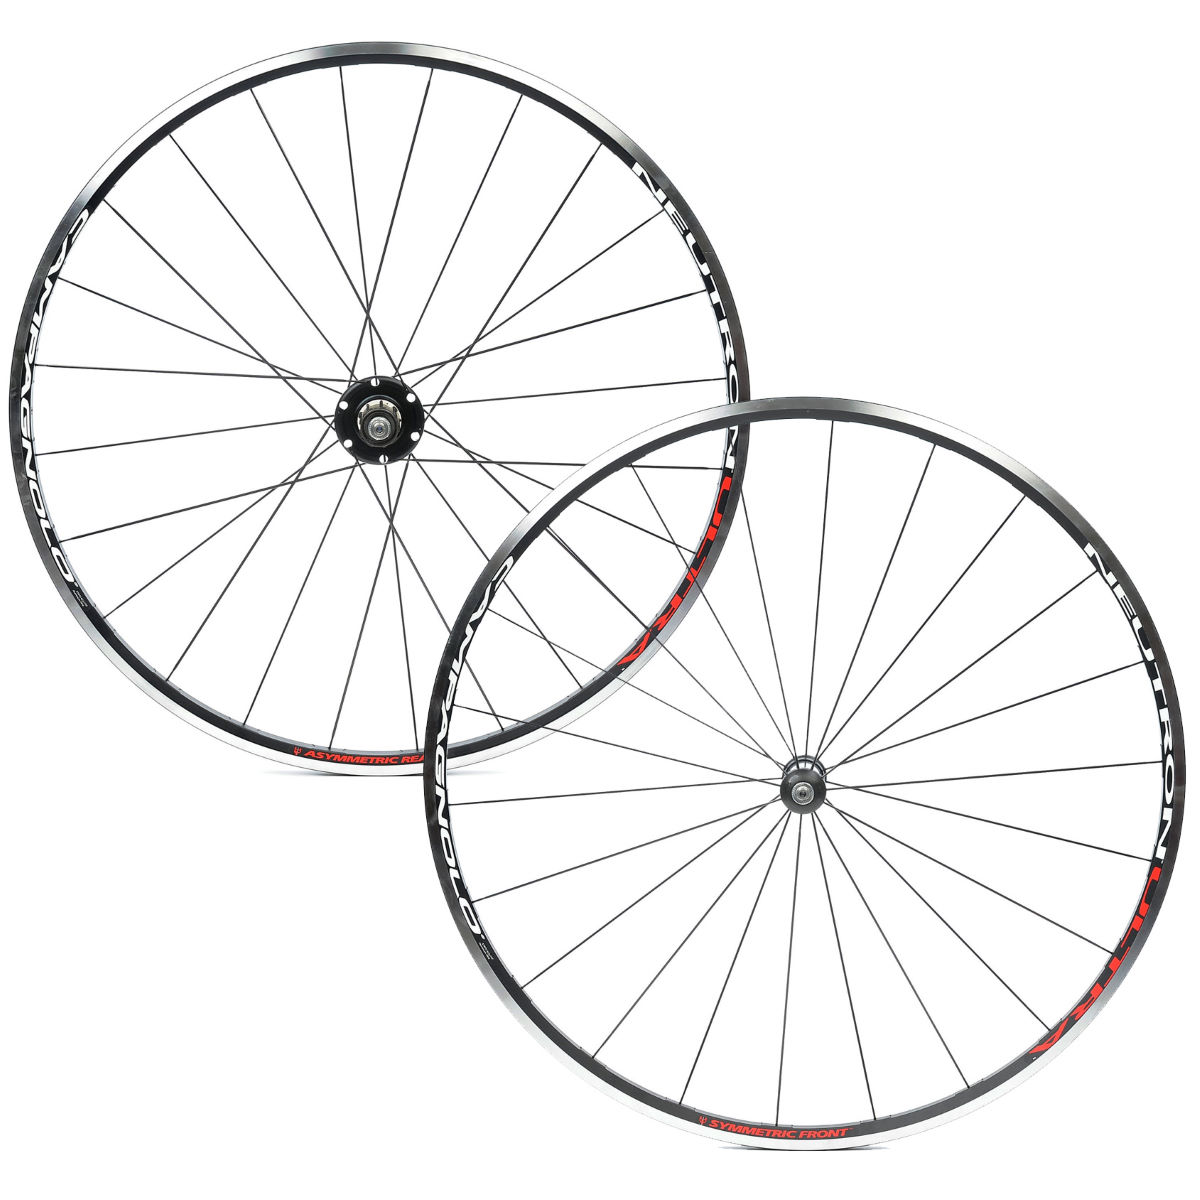 Campagnolo Neutron Ultra Clincher Road Bike Wheelset